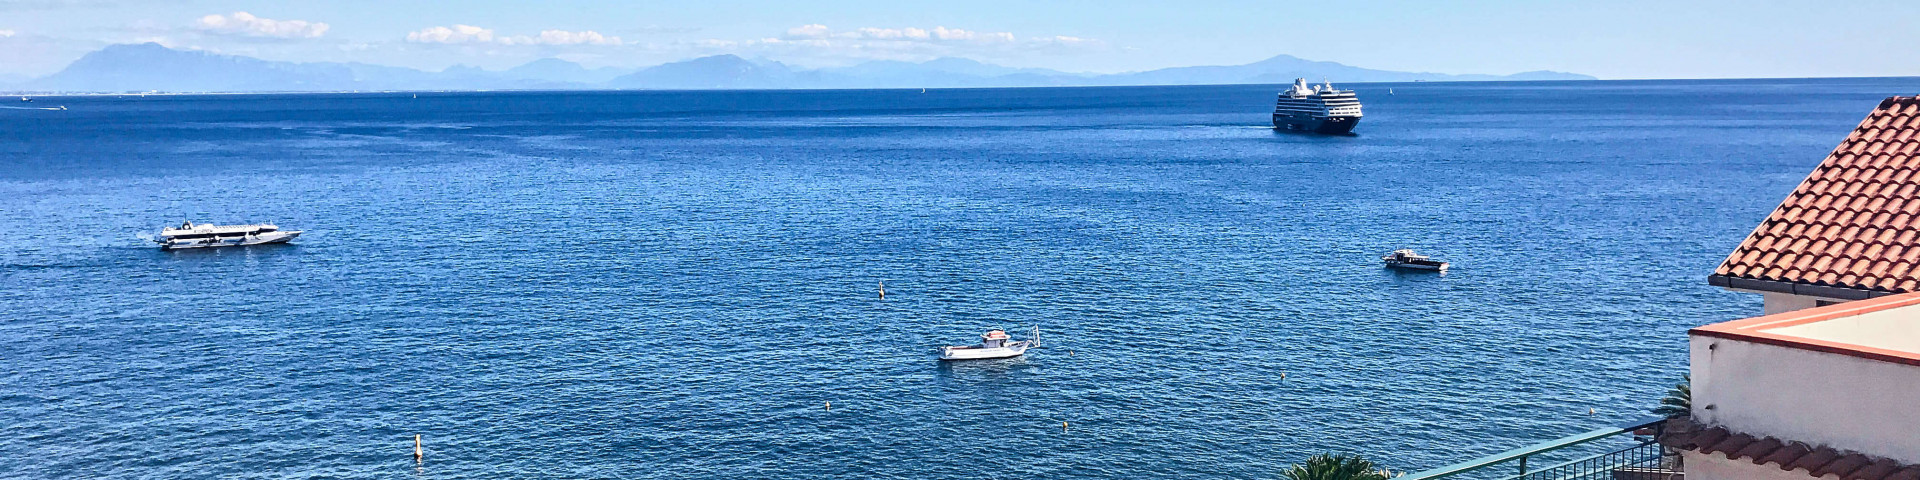 Far out to sea, a sheer white cruise ship was waiting for the passengers from its tender boat.